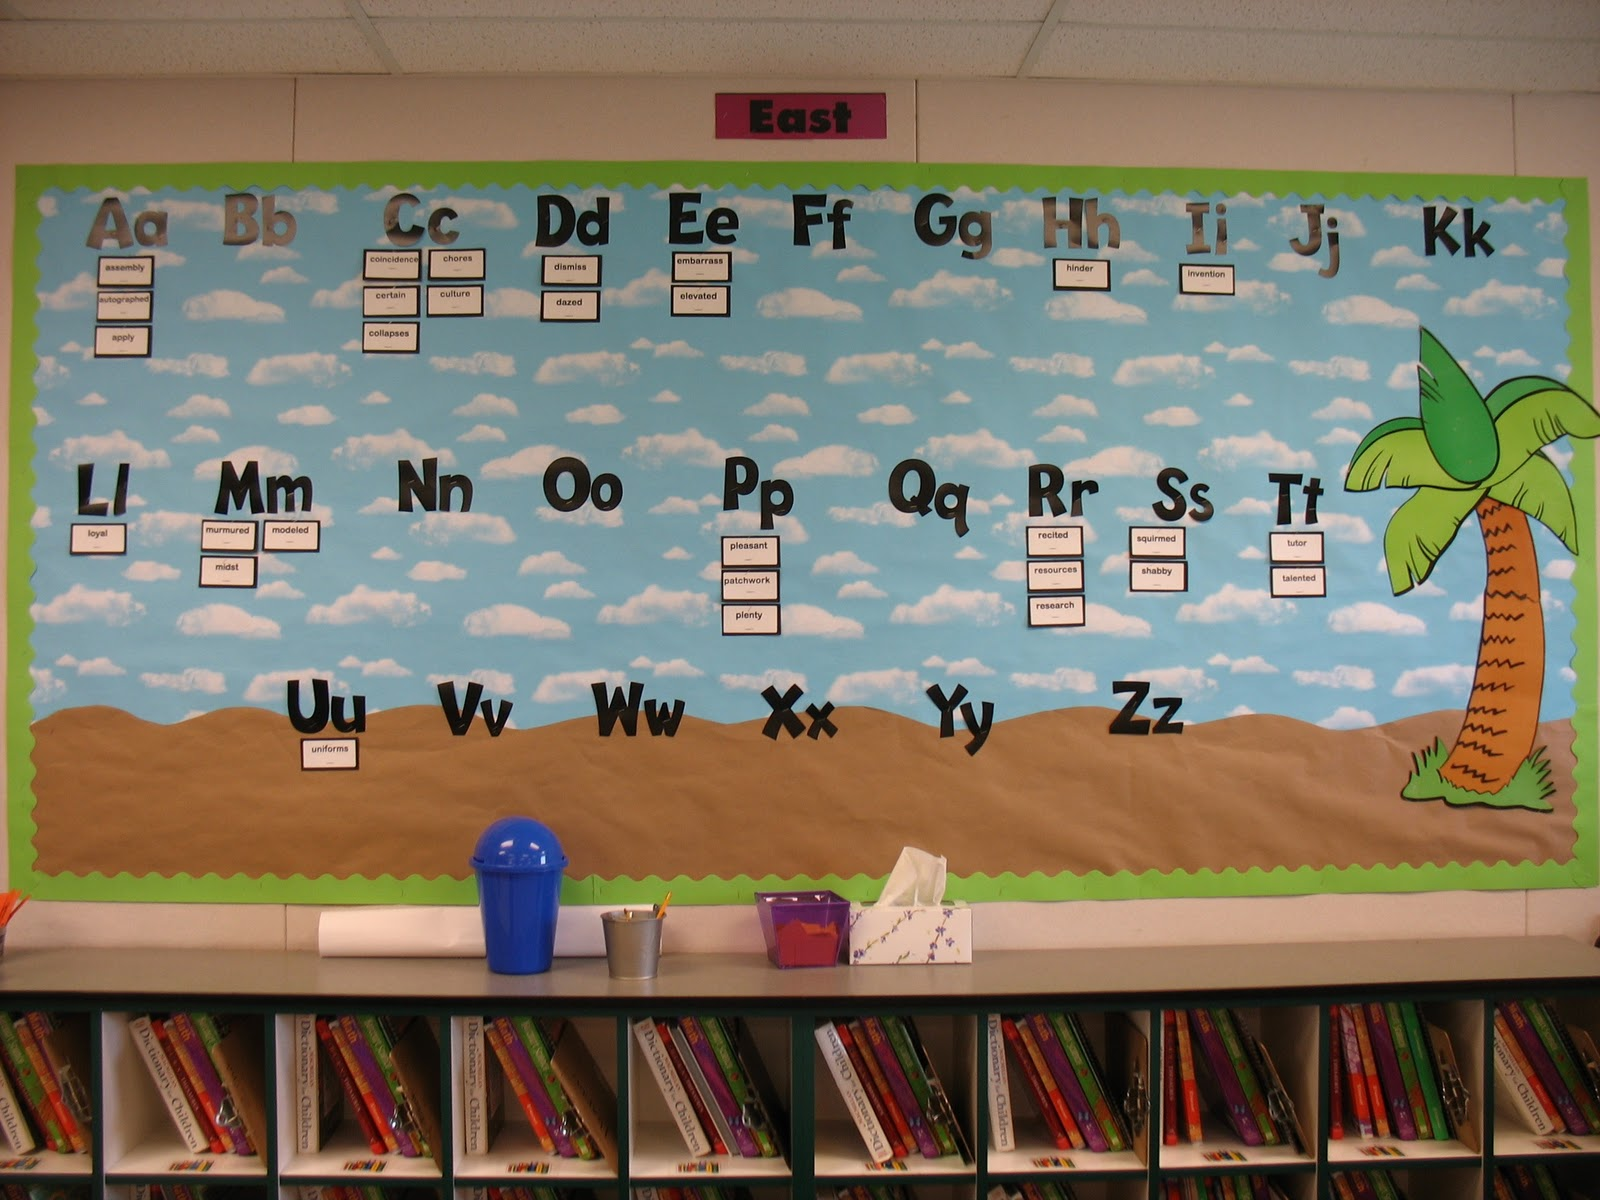 Tales from a Traveling Teacher: I LOVE SUBBING IN CLASSROOMS!